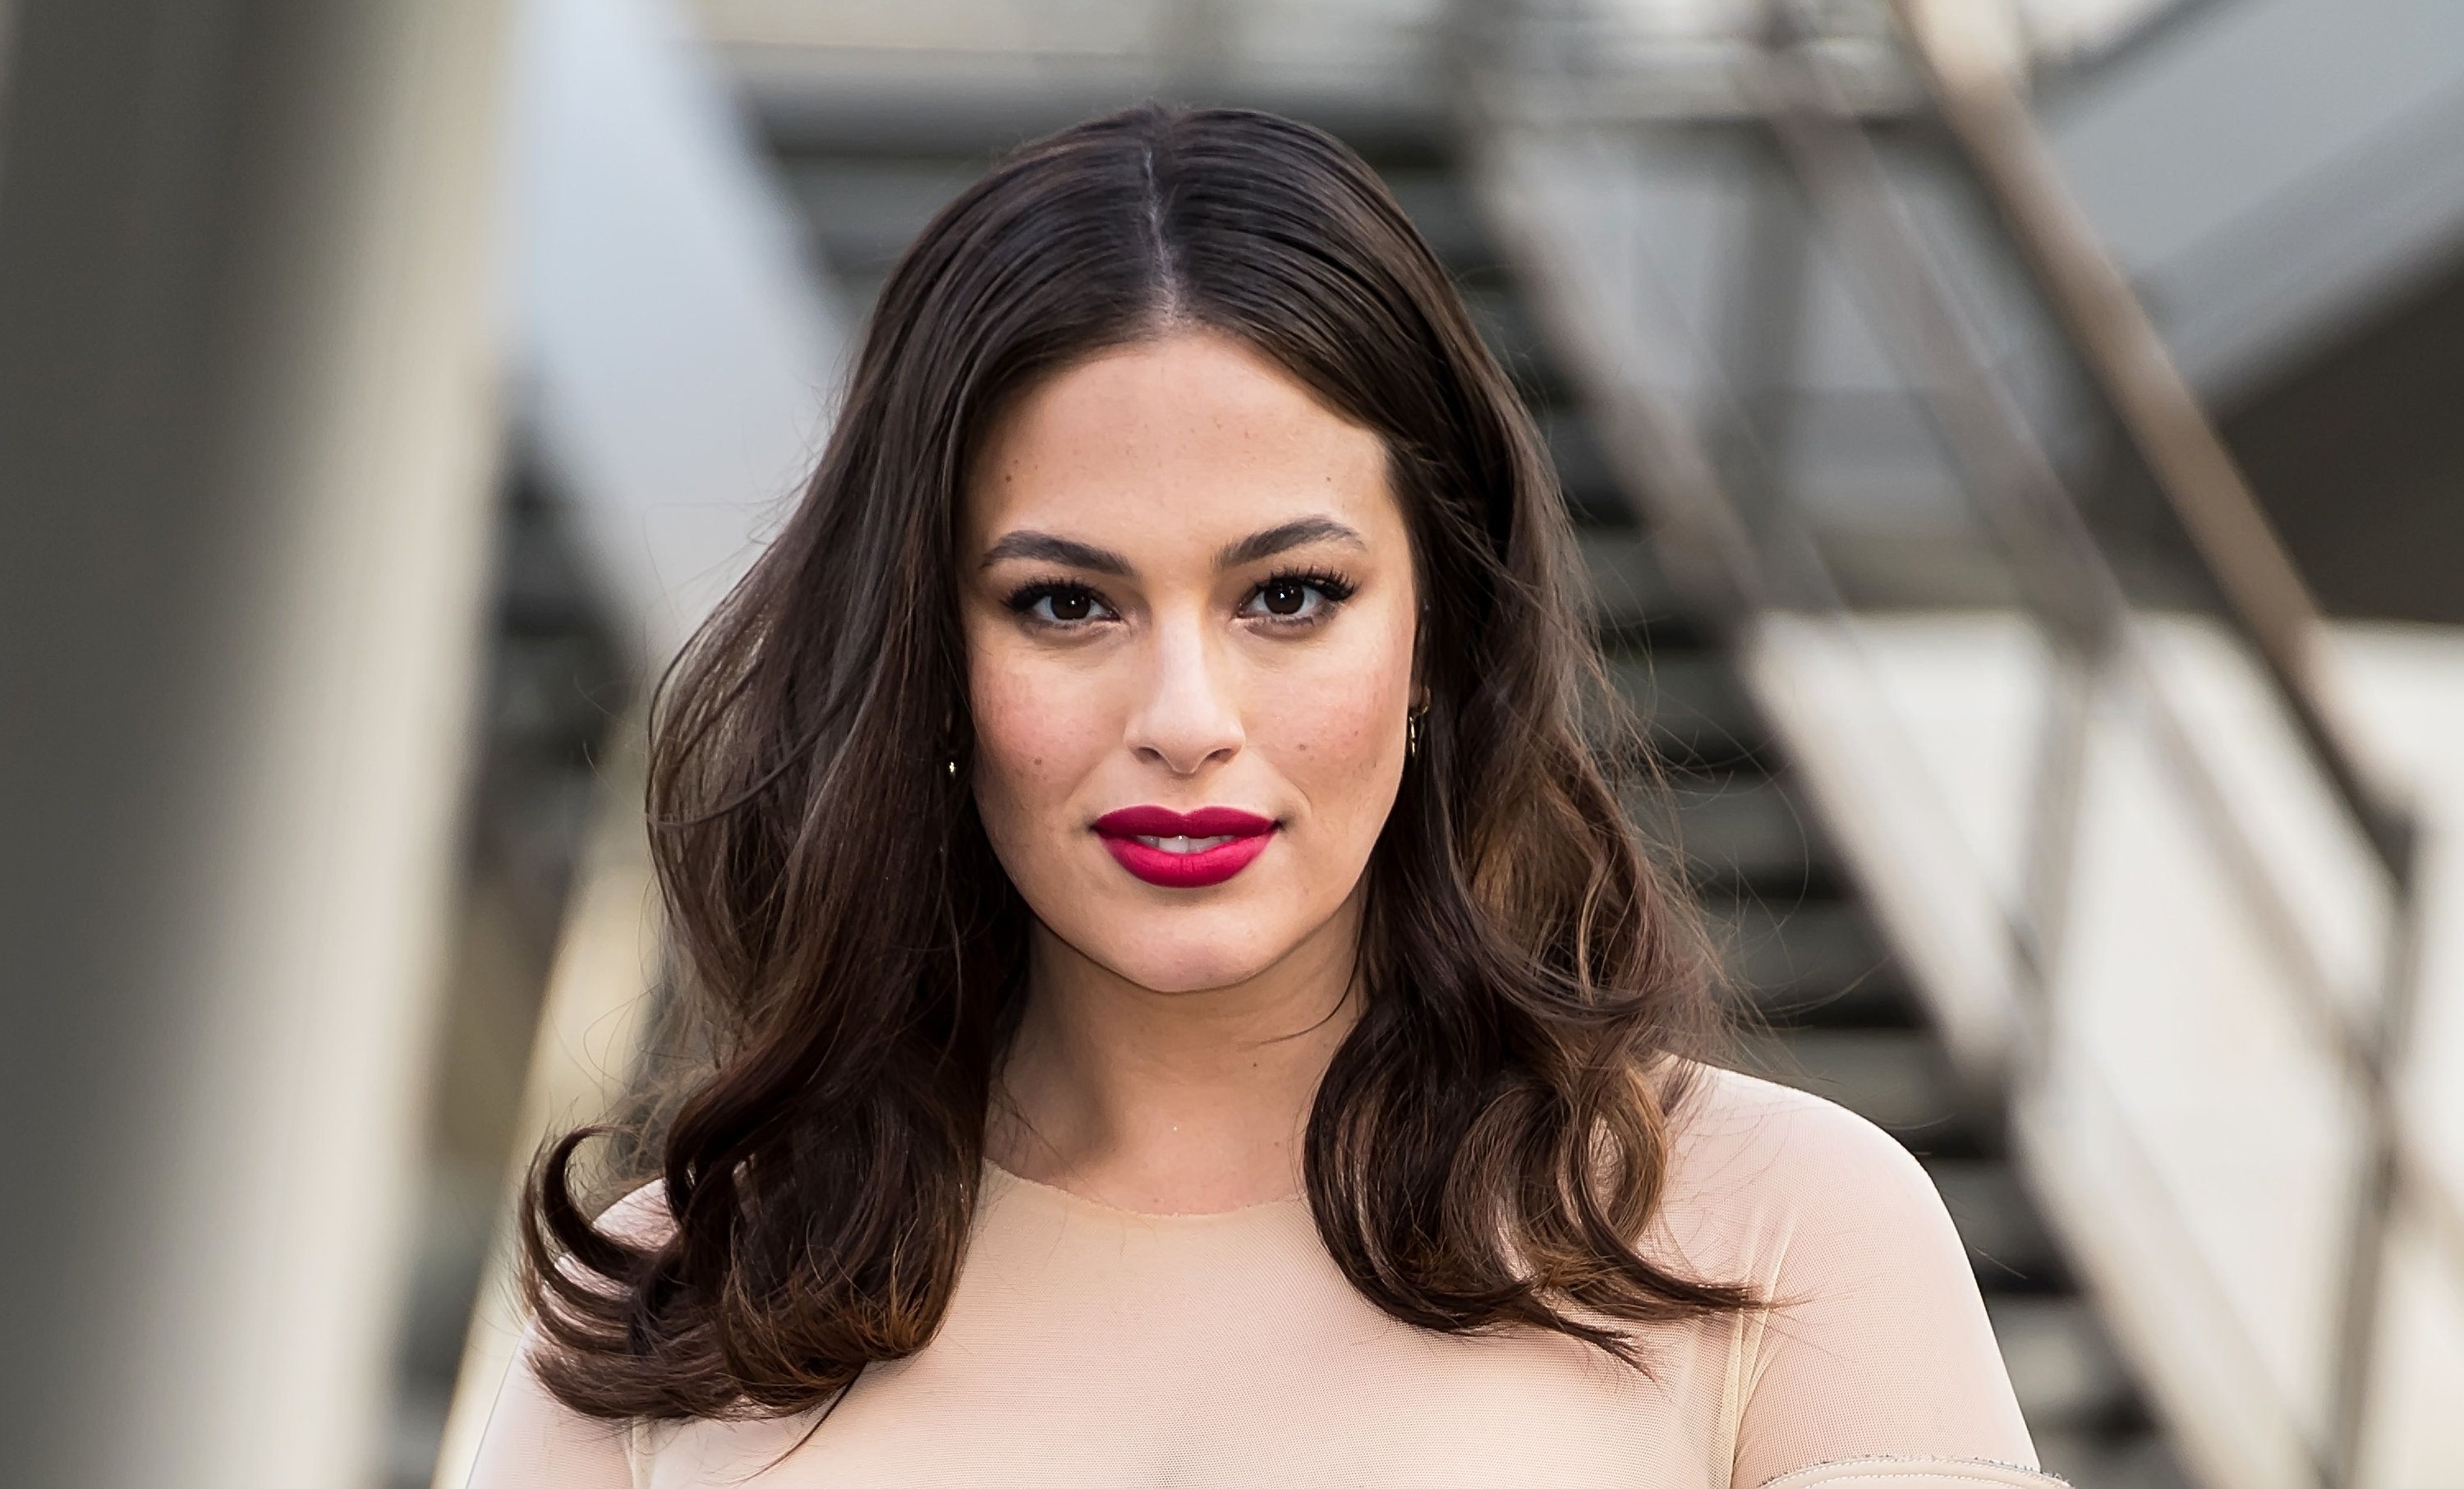 NEW YORK, NY - JUNE 04:  Model Ashley Graham is seen arriving to the 2018 CFDA Fashion Awards at Brooklyn Museum on June 4, 2018 in New York City.  (Photo by Gilbert Carrasquillo/GC Images)